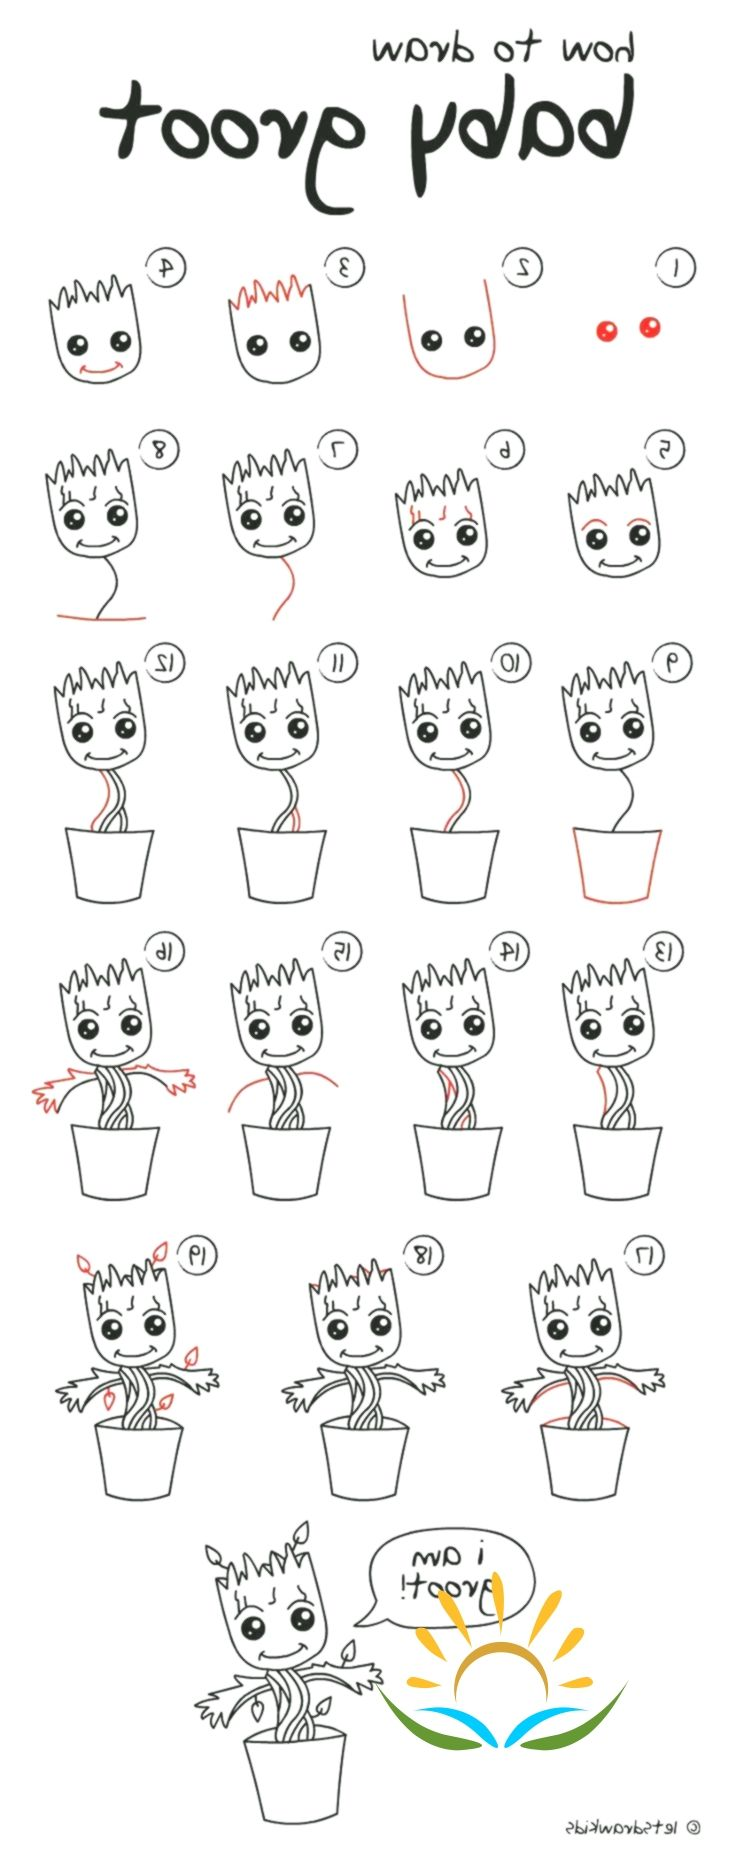 groot easy step draw drawing drawings pencil dayna kebze steps